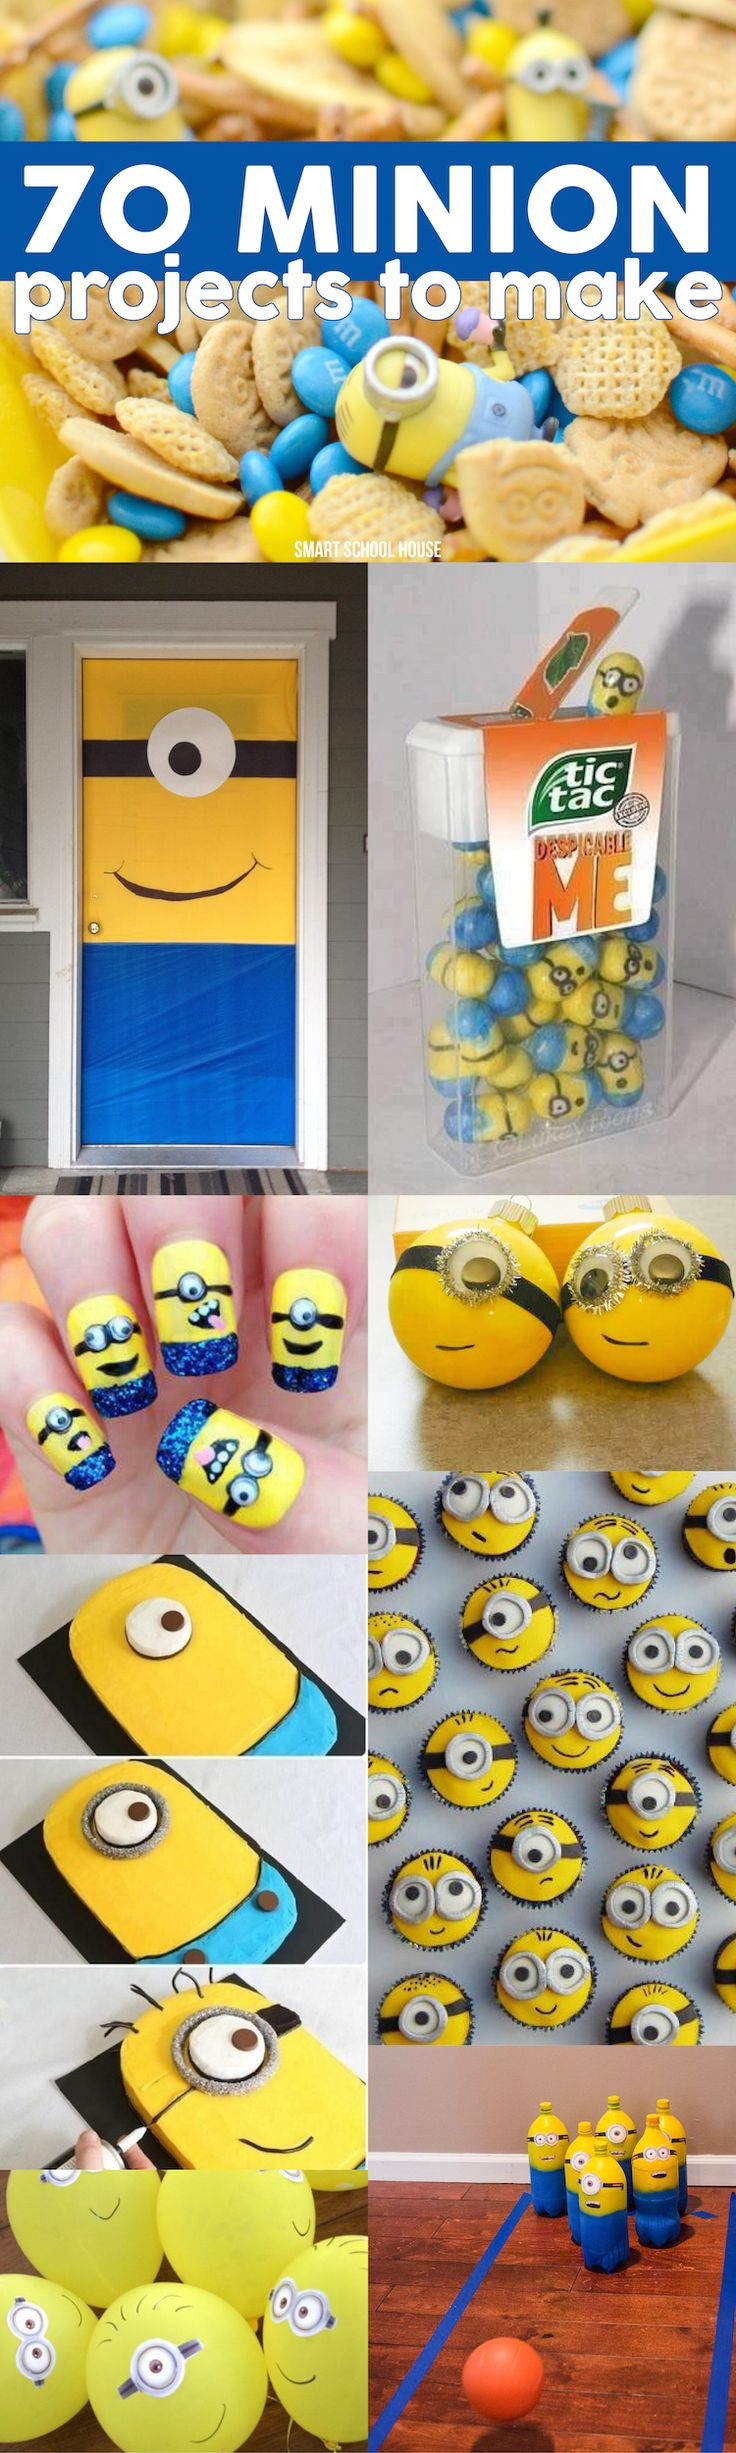 70 Minion Projects to Make! My kids would love these!